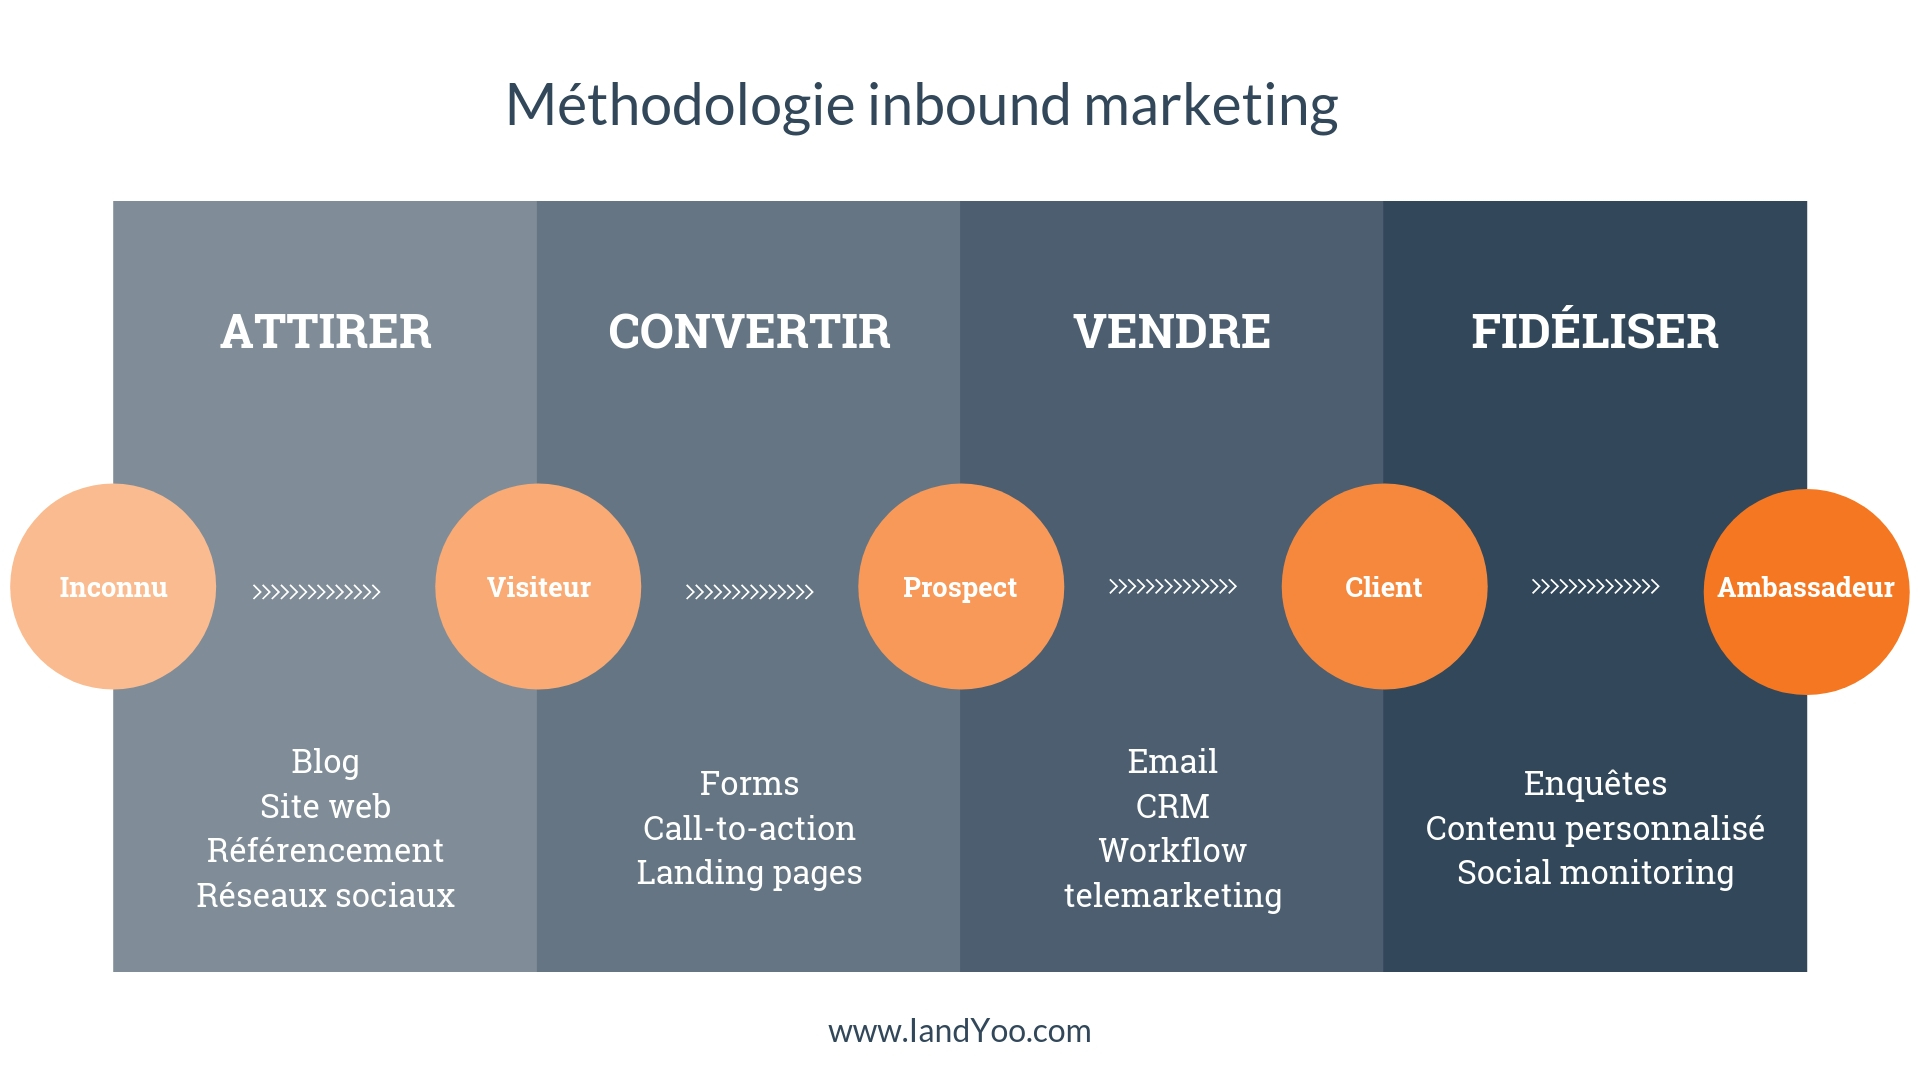 Méthodologie inbound marketing IANDYOO